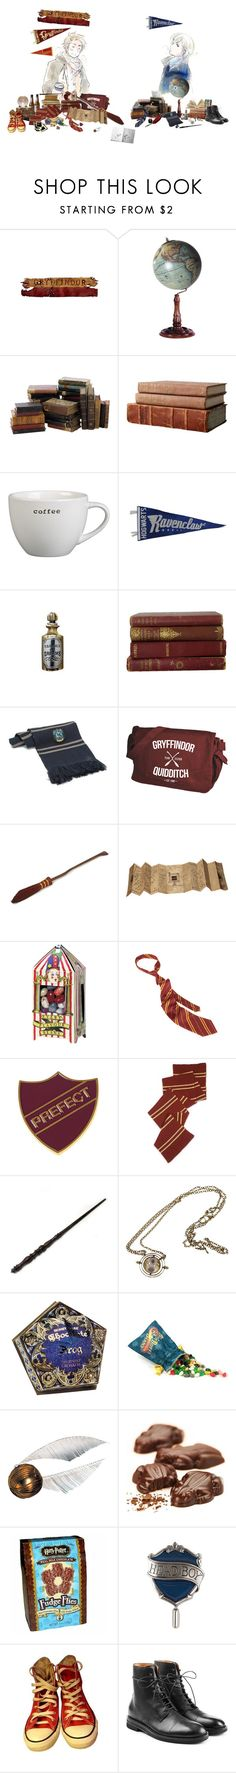 """""""hogwarts love"""" by ne-ram on Polyvore featuring WALL, Authentic Models, Crate and Barrel, CO, Emma Watson, Bertie, Dylan's Candy Bar, Converse, Maison Margiela and men's fashion"""